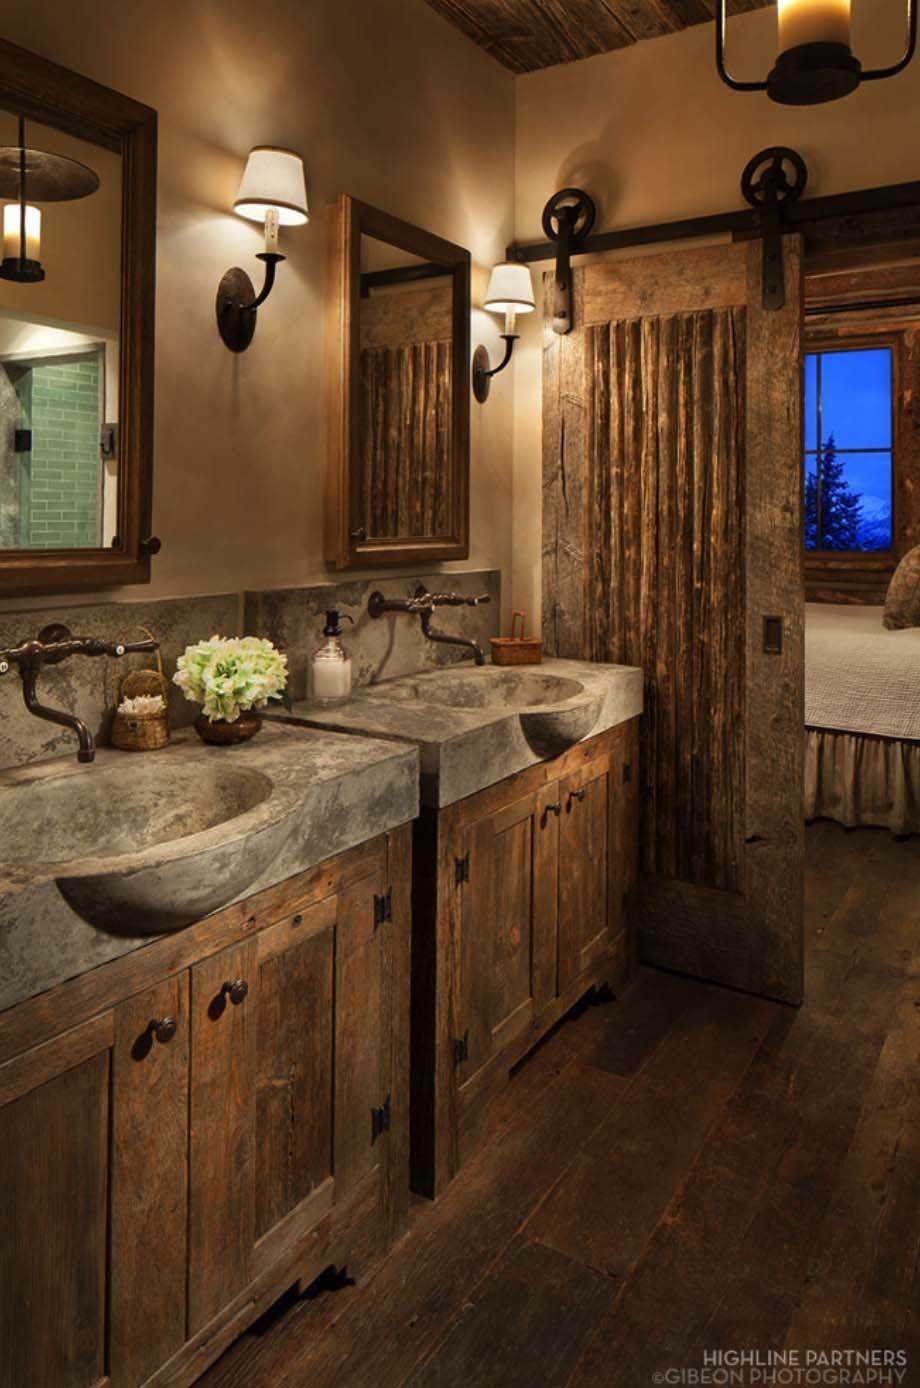 rustic bathroom design ideas best small space organization hacks 31 gorgeous rustic bathroom decor ideas to try at home 4966